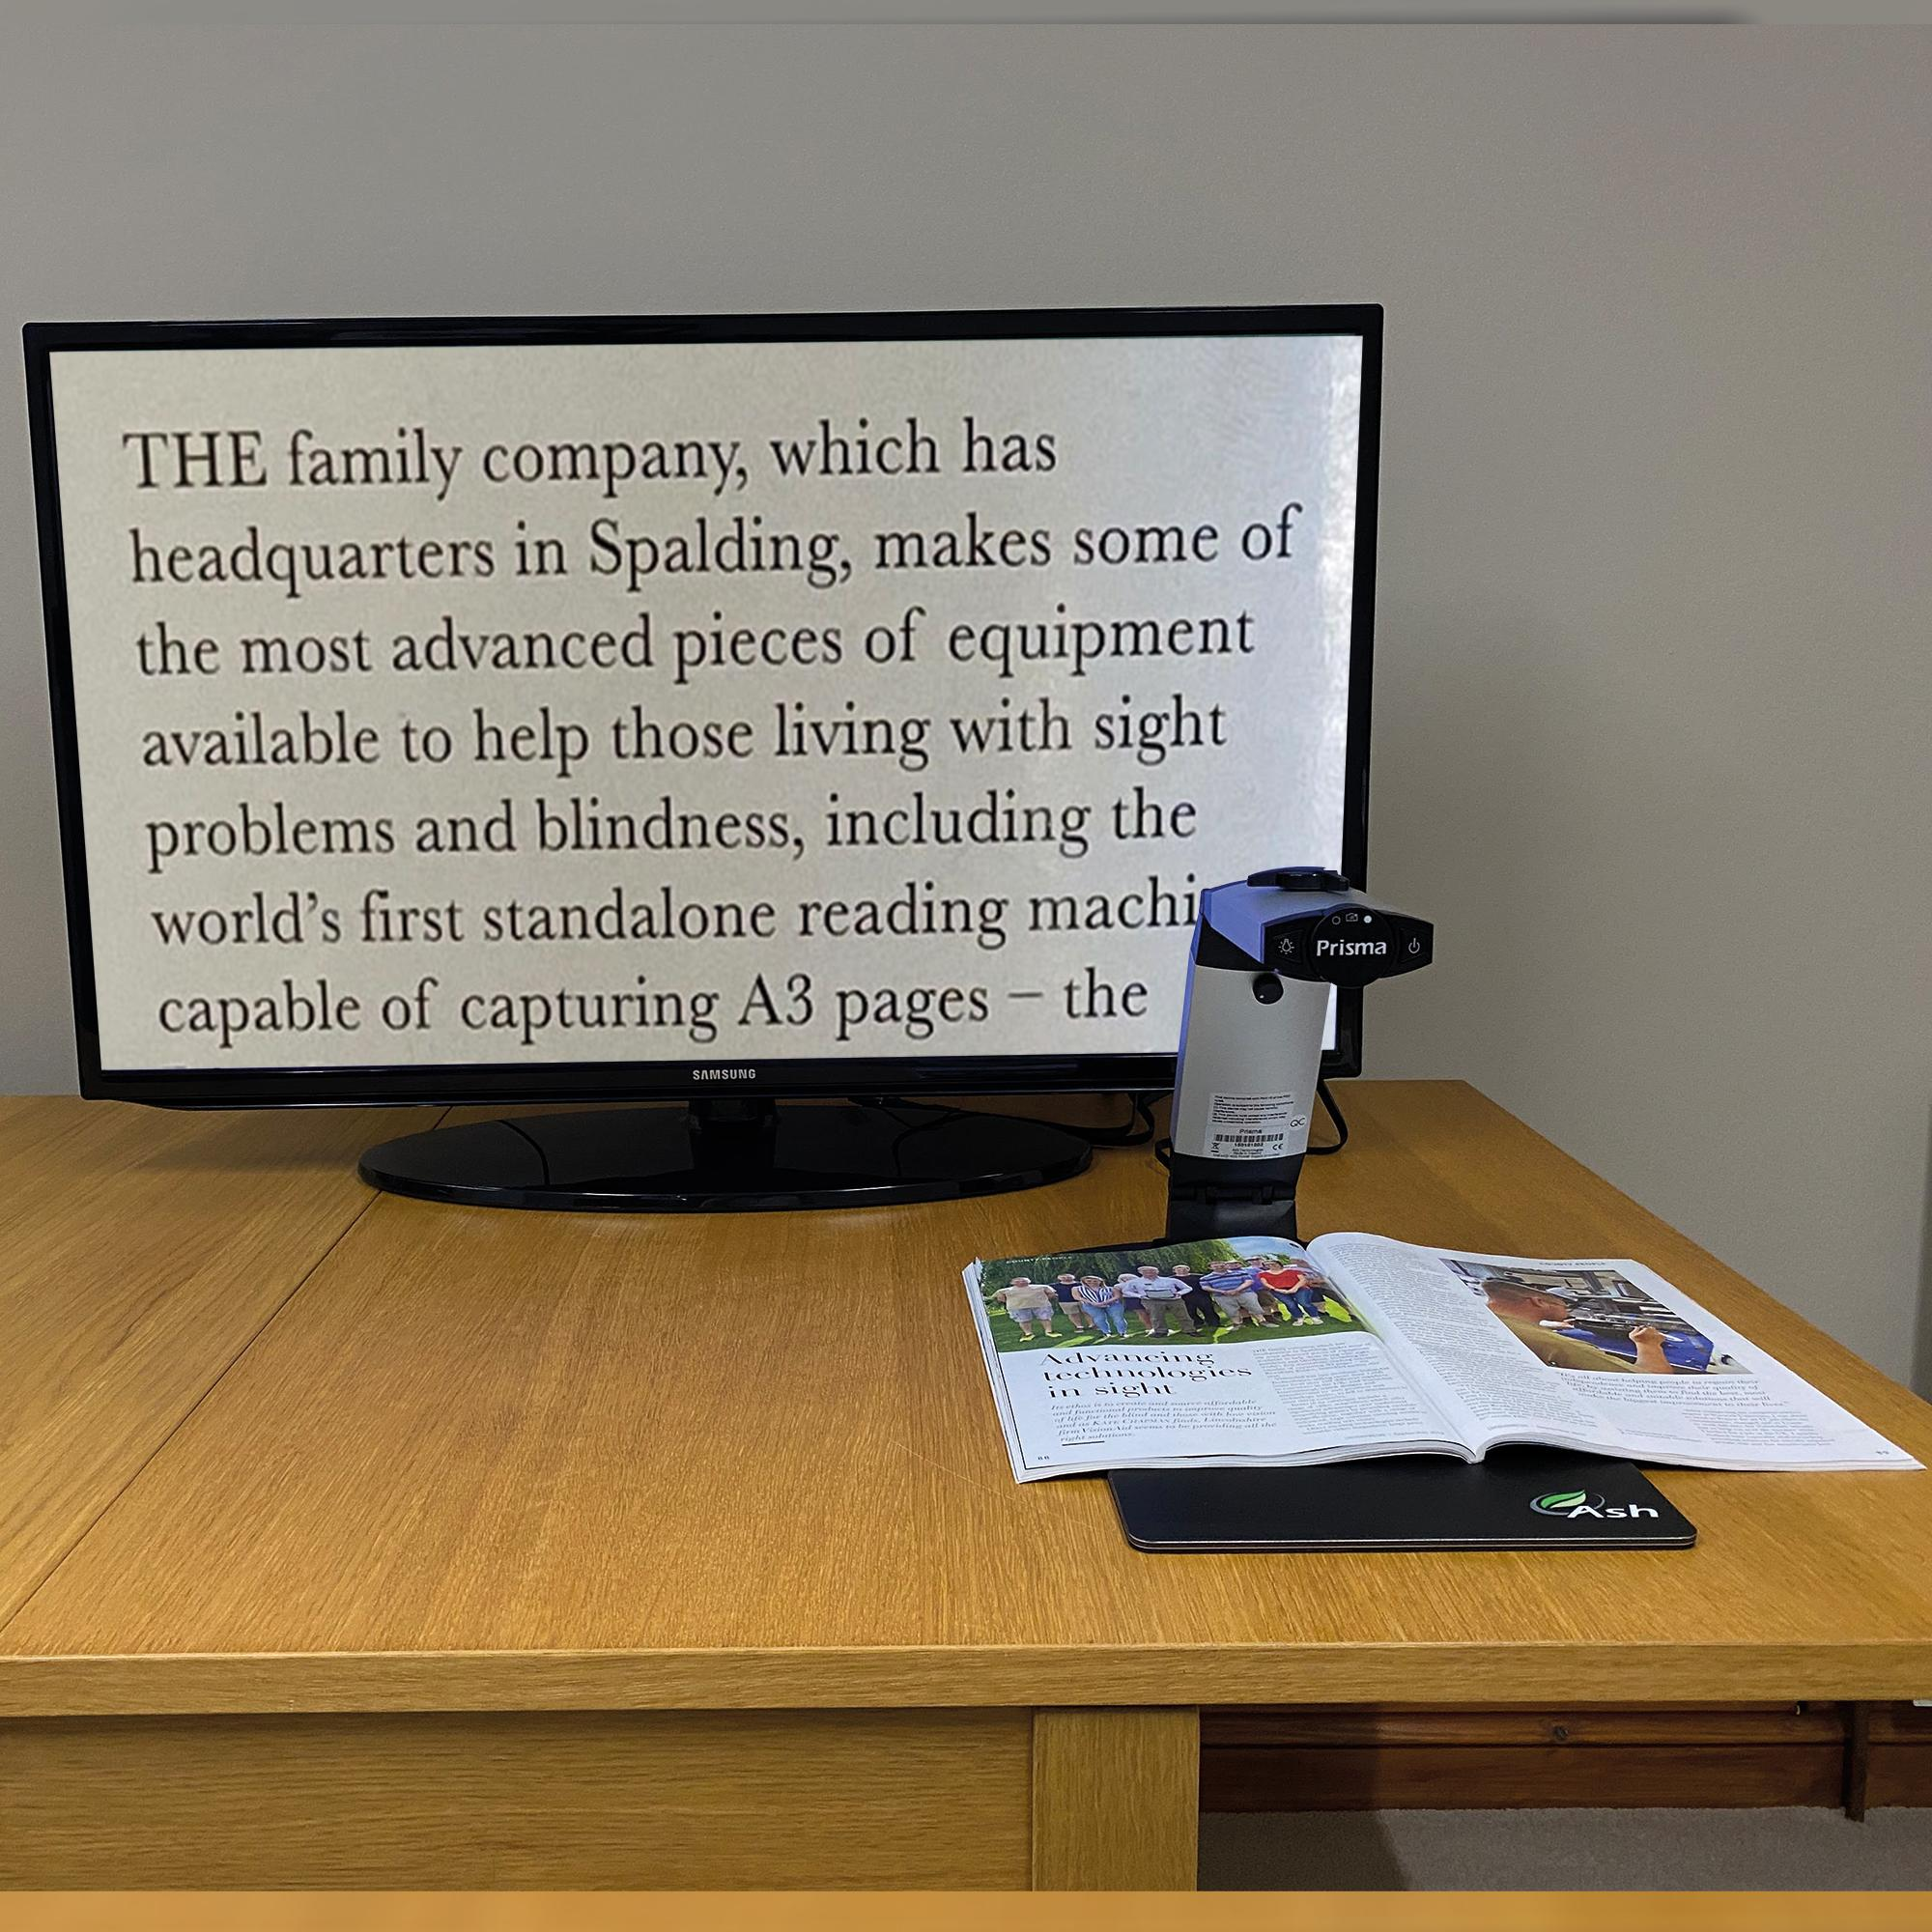 The Prisma displaying a magazine text on a large monitor. The Prisma can be plugged into computer monitors, or larger TVs for easier magnification.